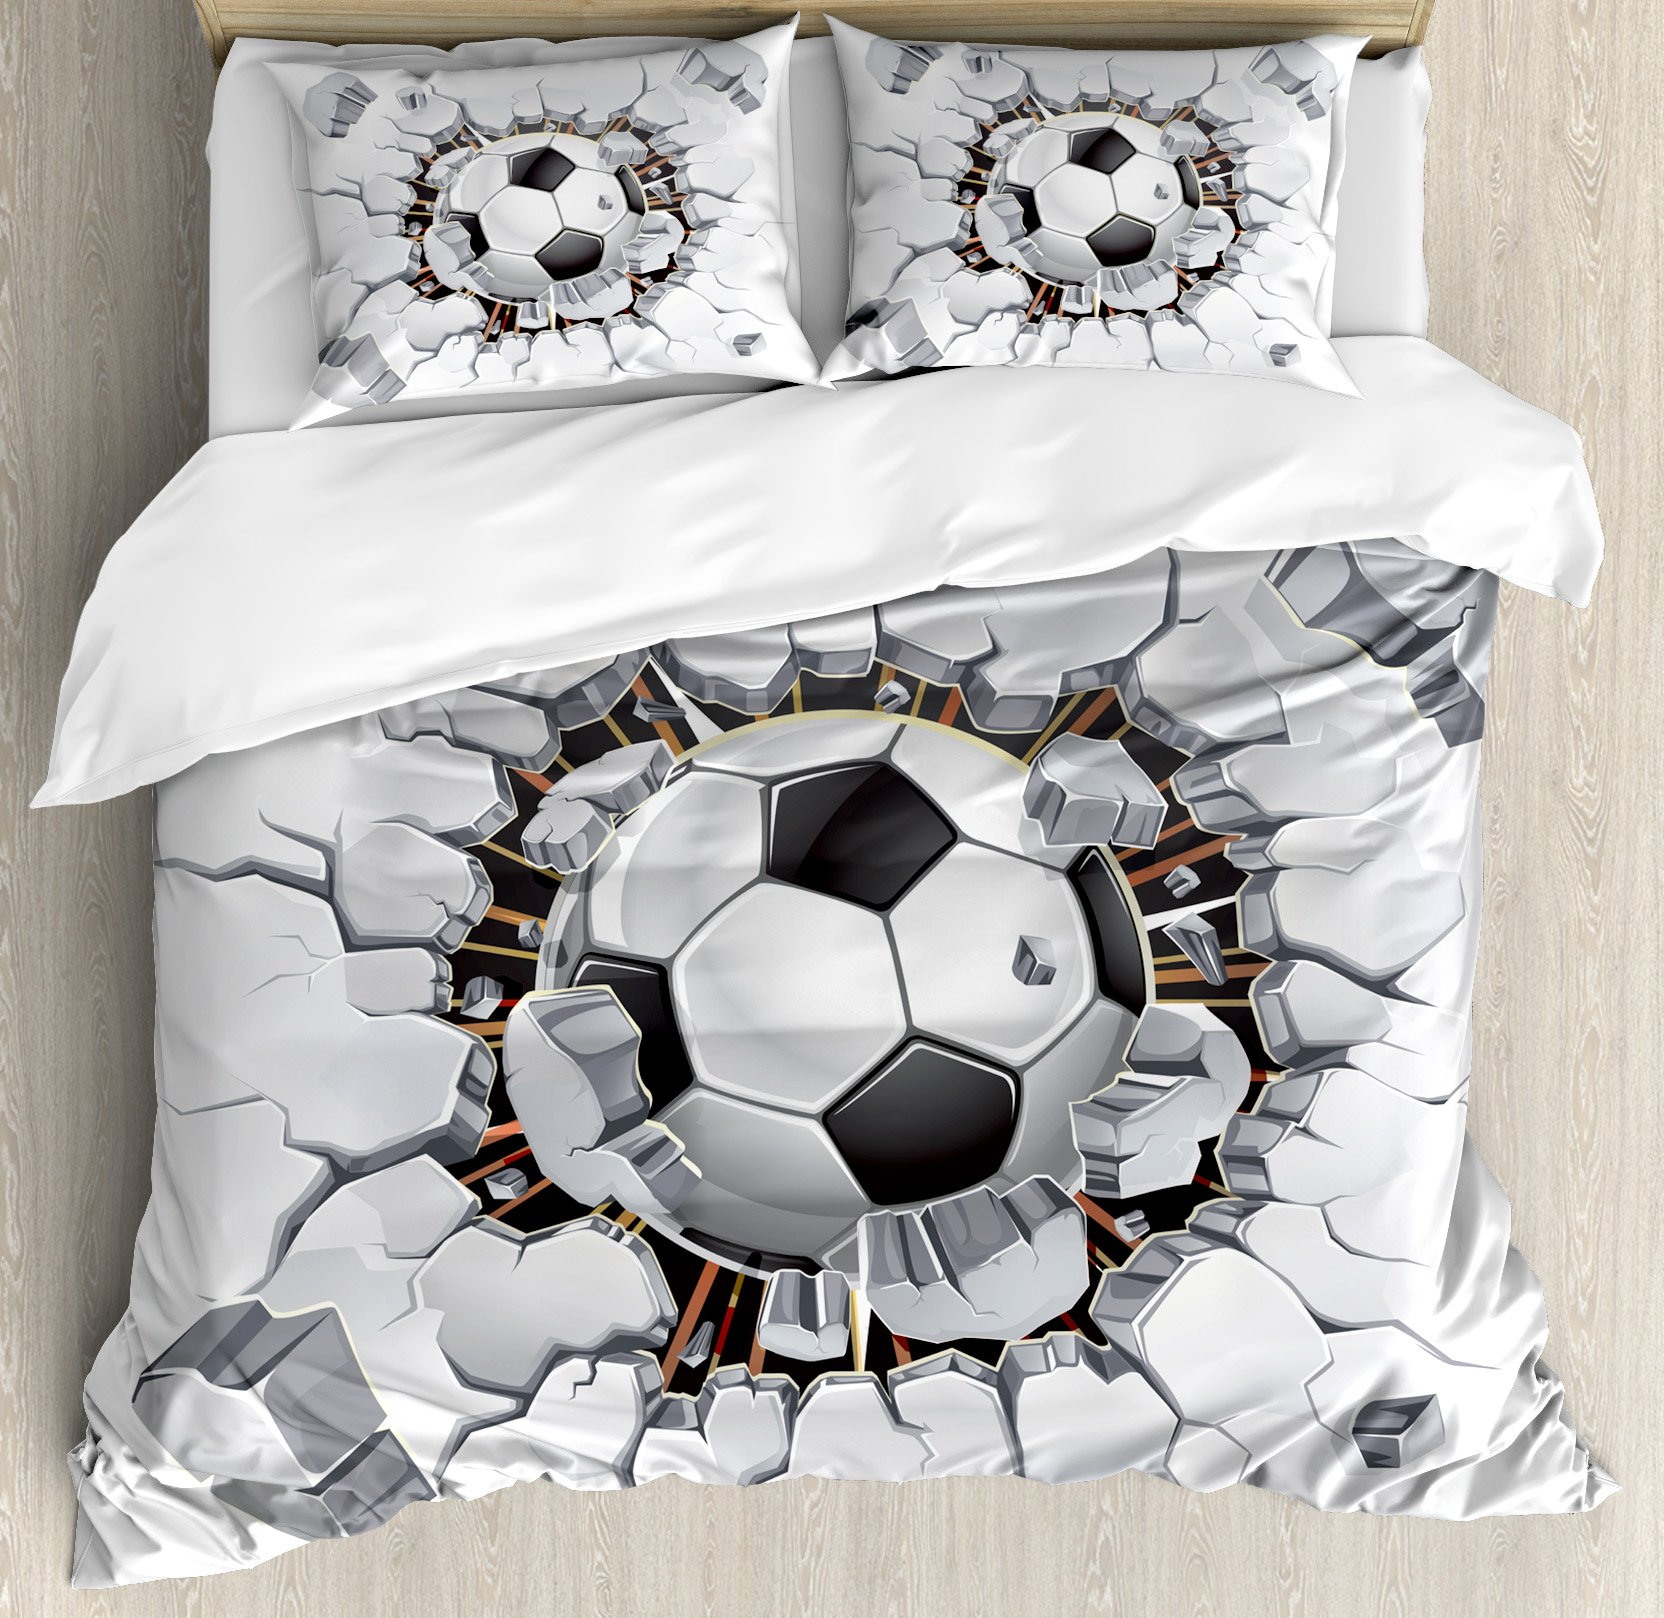 Sports Decor King Size Duvet Cover Set by Ambesonne, Soccer Ball and Old Plaster Wall Damage Destruction Punching Illustration, Decorative 3 Piece Bedding Set with 2 Pillow Shams